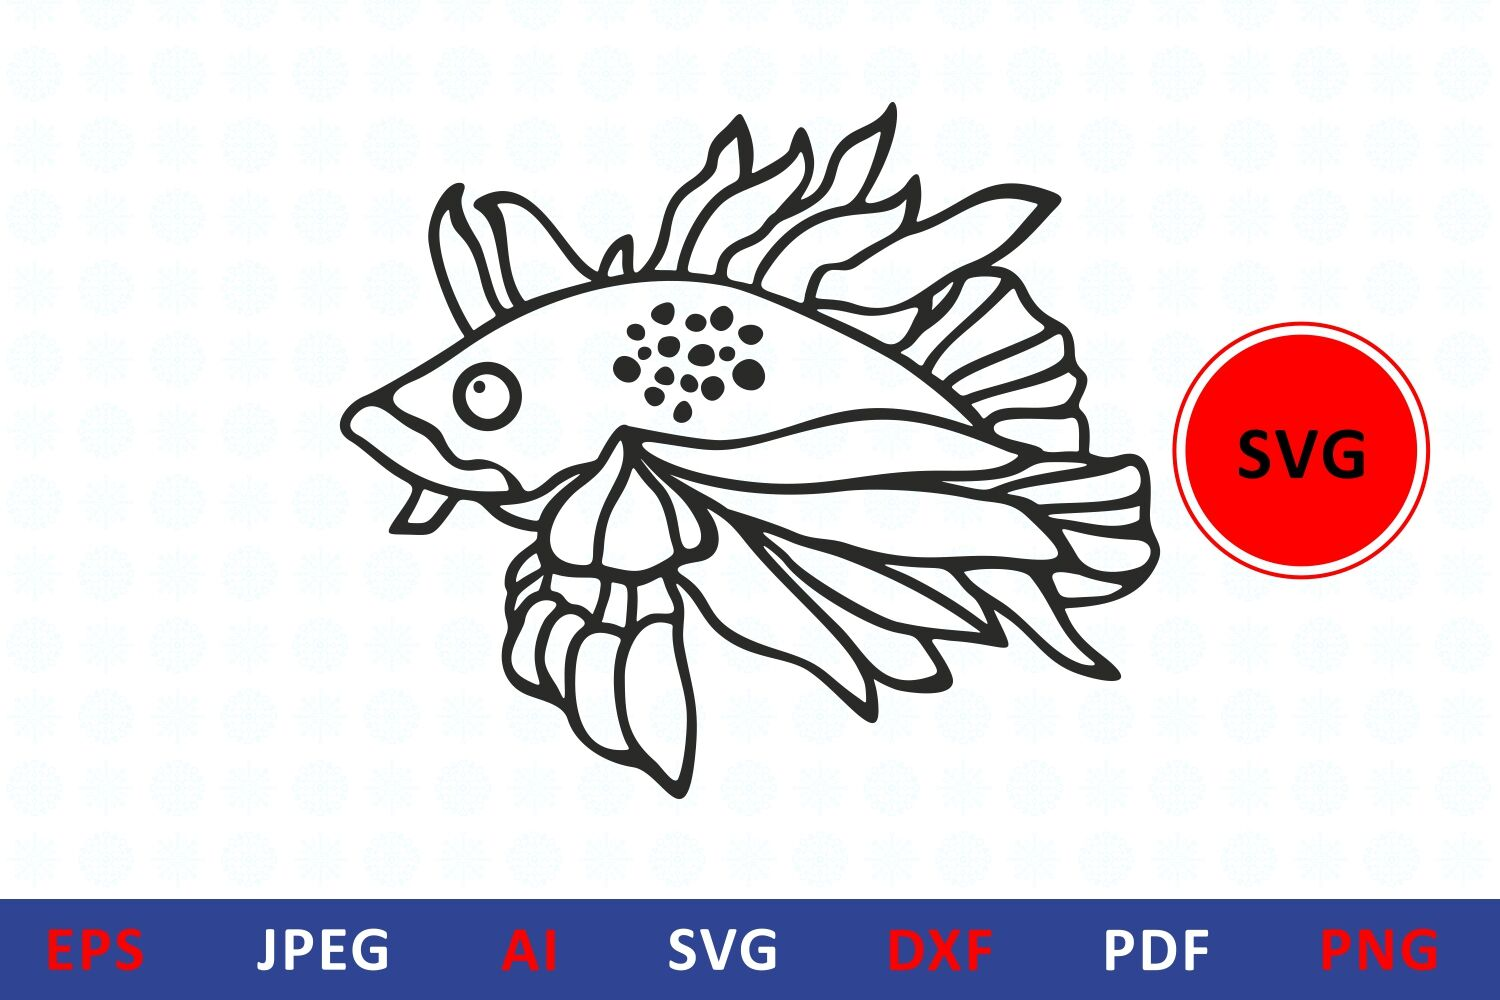 Download Fishing Svg Clipart Fishing Files For Silhouette Fishing Dxf Files Fishing Svg Design Fishing Svg Cut File Fishing Cutting Files Clip Art Art Collectibles Delage Com Br